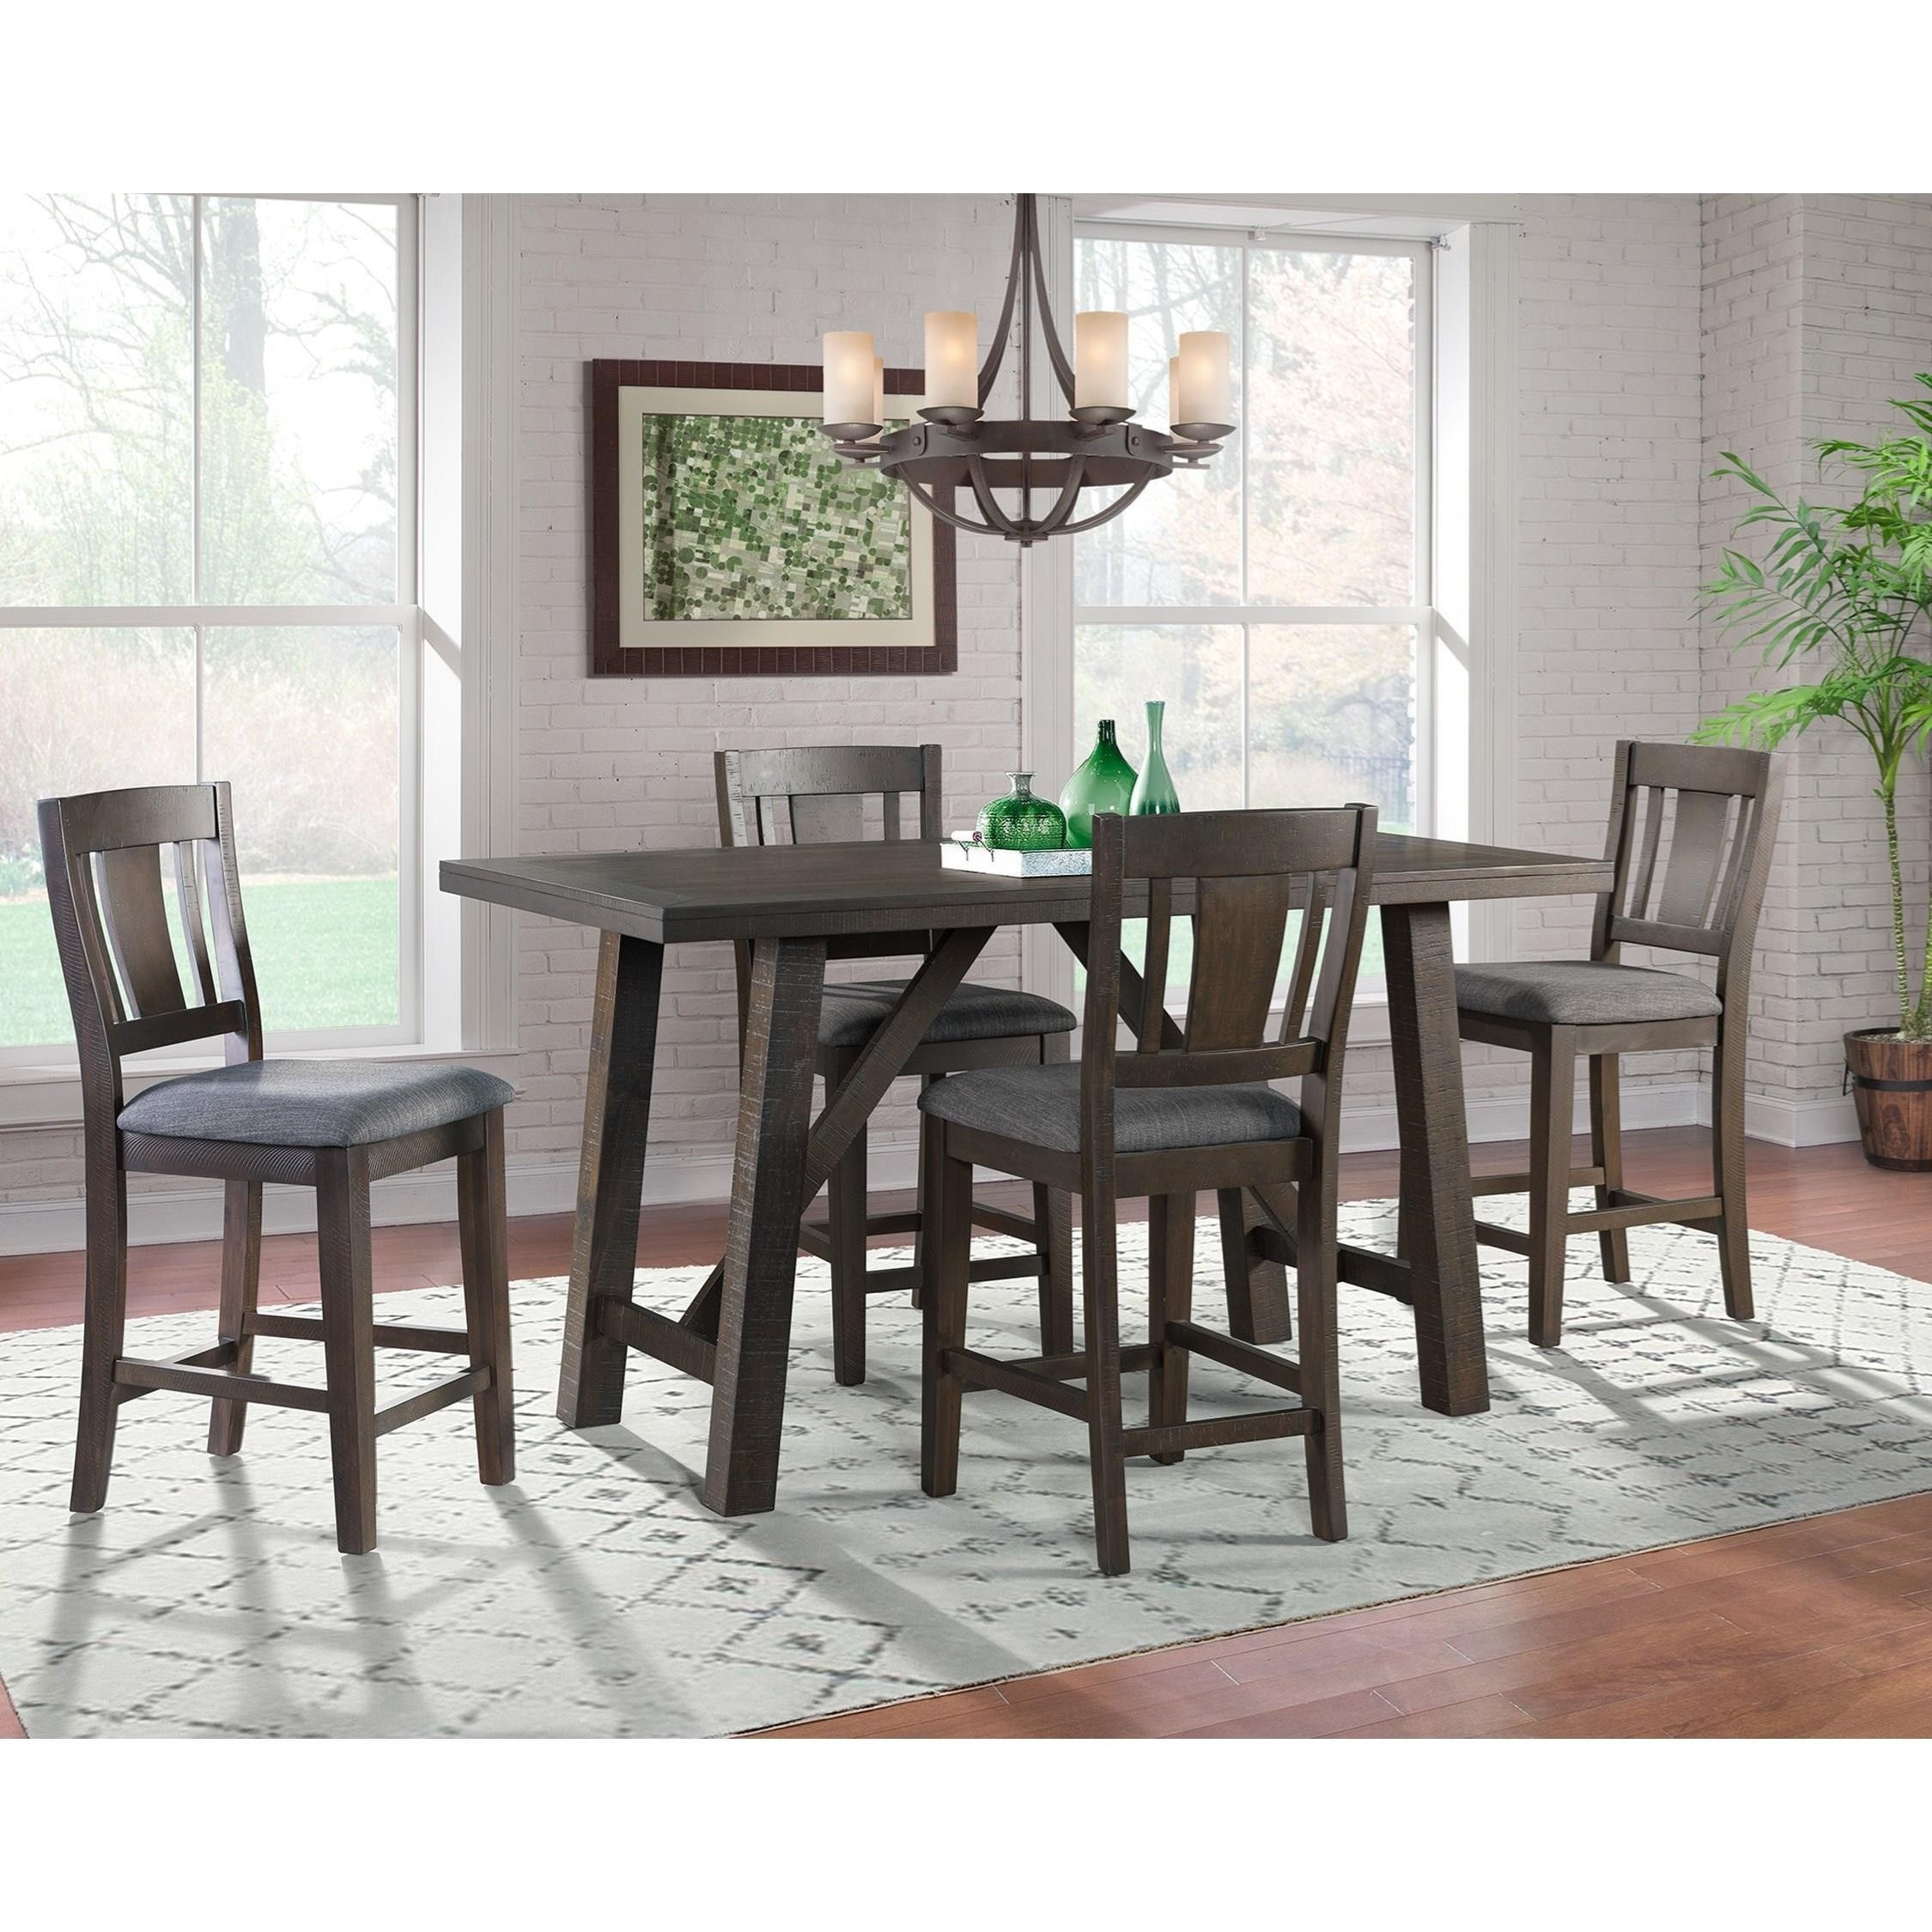 Cash 5-Piece Counter Height Dining Set by Elements International at Wilcox Furniture